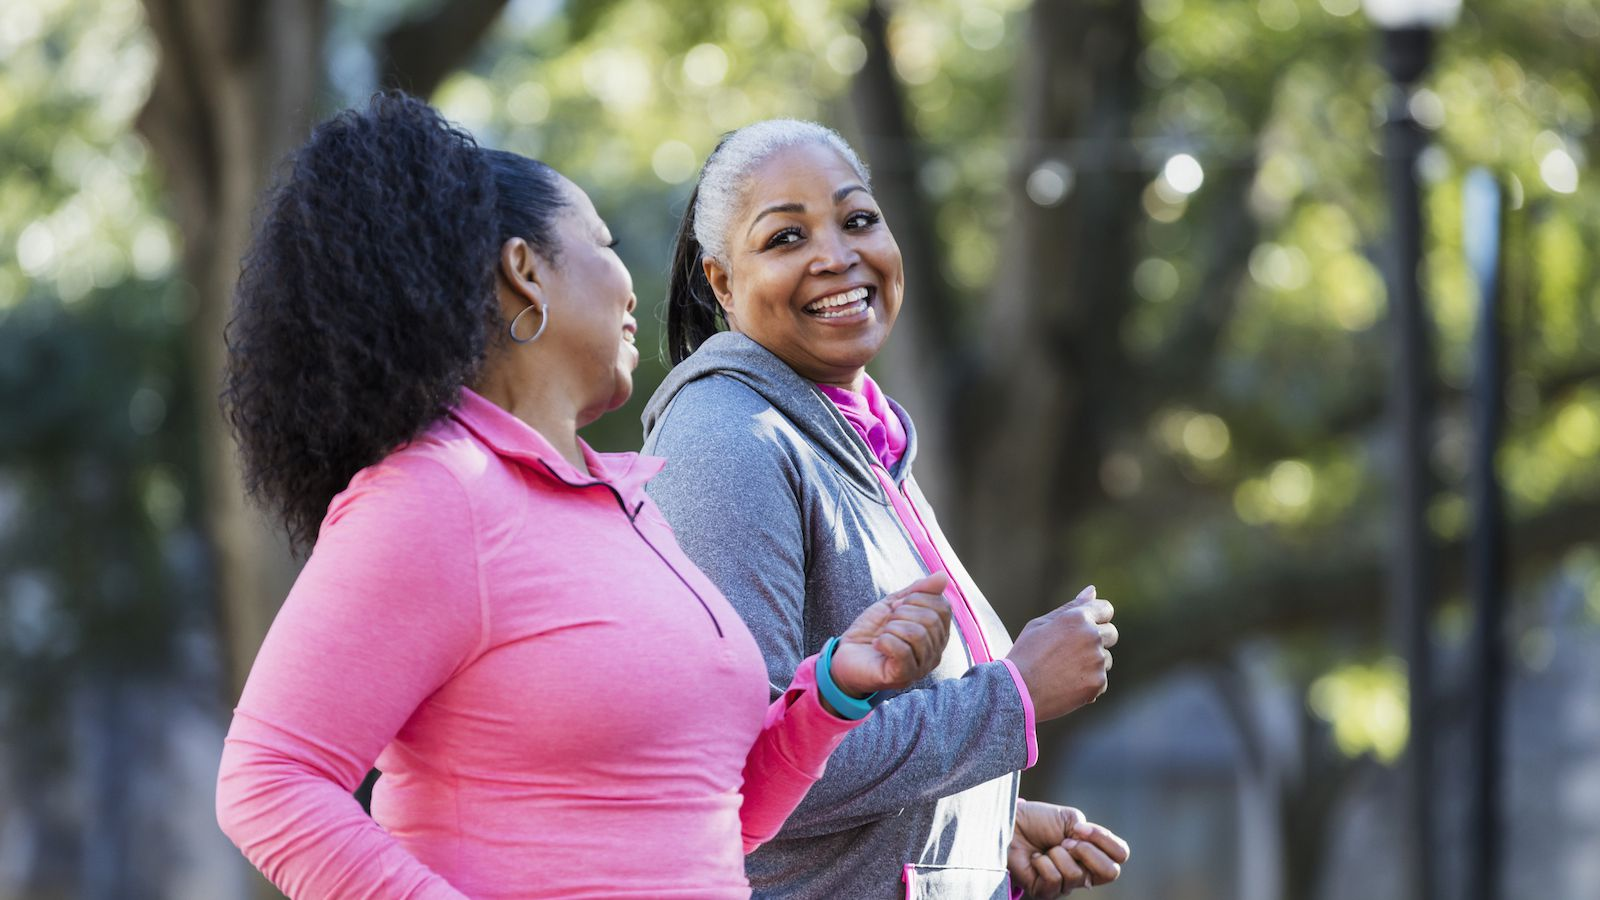 Del Webb at Trinity Falls has miles of walking trails for enjoying nature and exercising with friends.